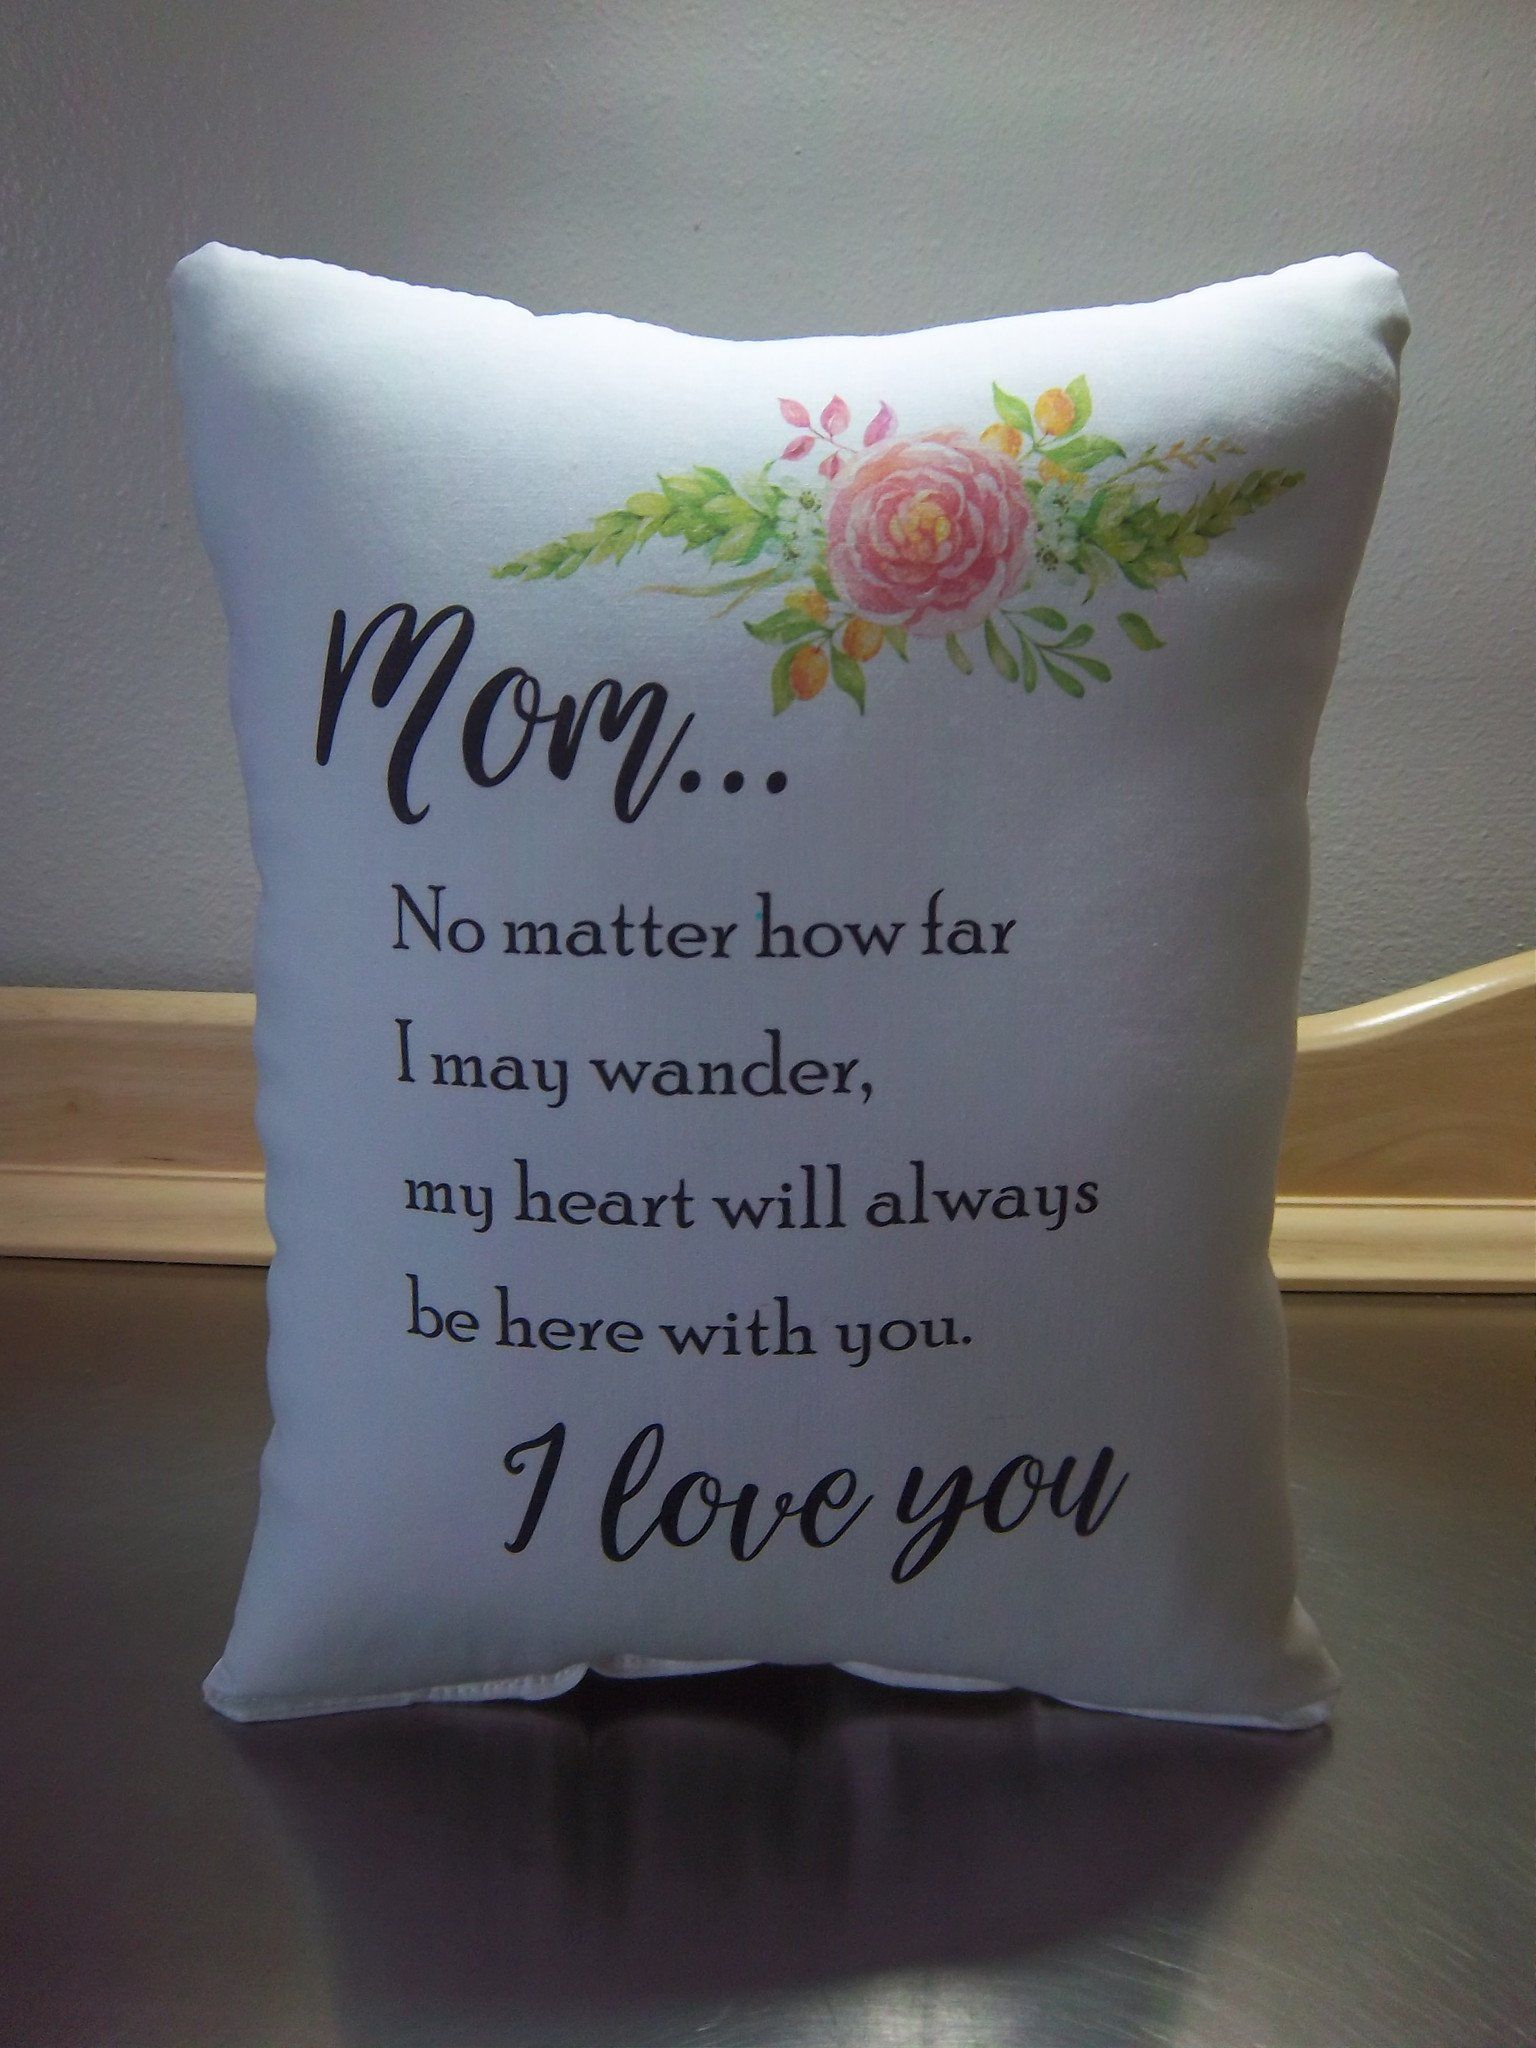 Pillows mom birthday gift throw pillow mother long distance gift pillows easter gift for mom white poplin throw pillow mother birthday gift home decor negle